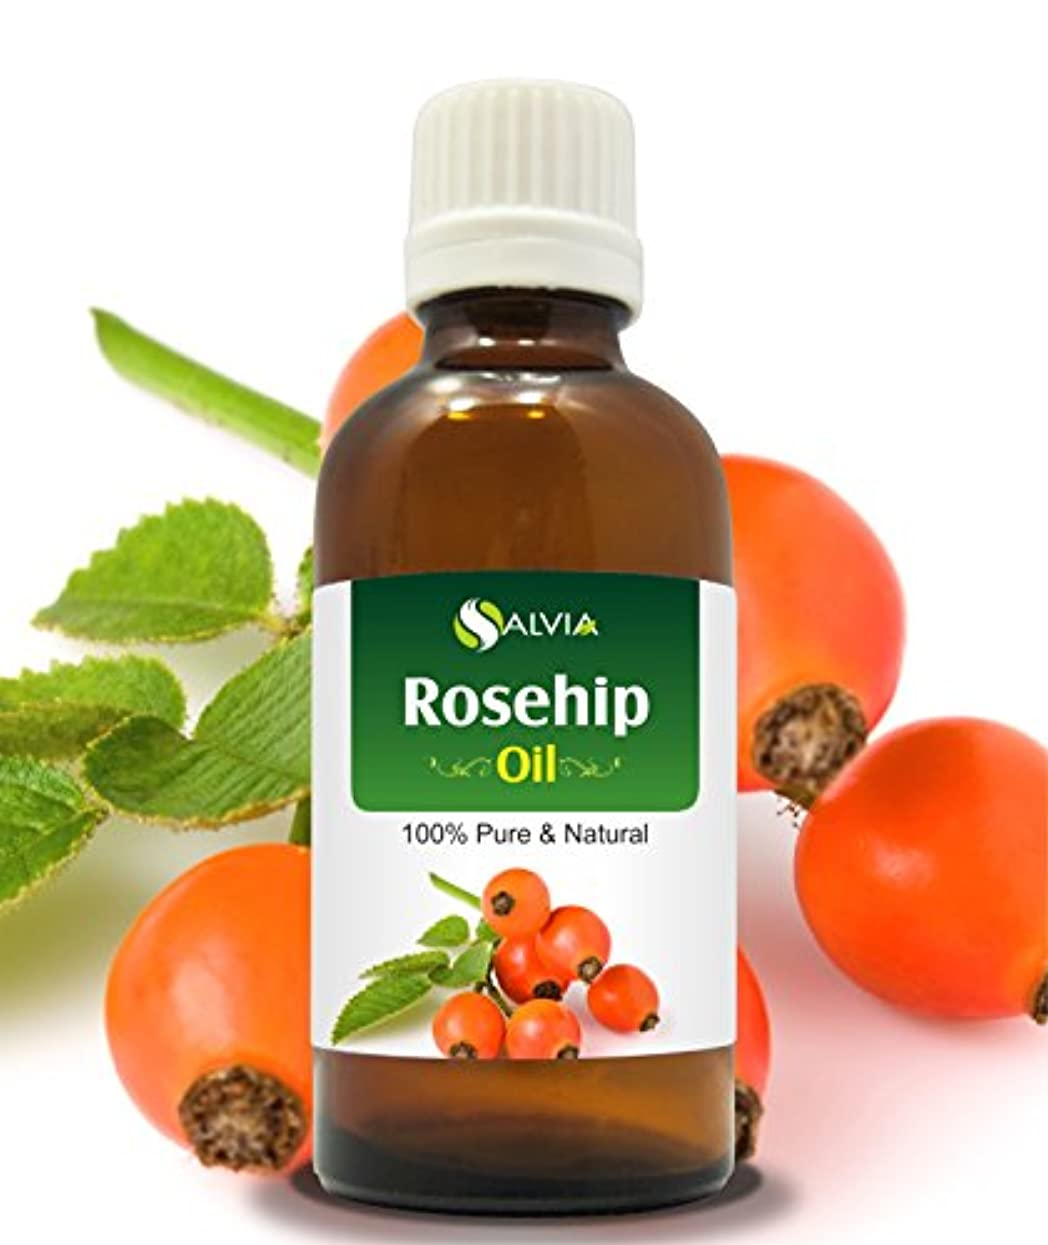 ペチュランス一晩クライマックスROSEHIP OIL 100% NATURAL PURE UNDILUTED UNCUT CARRIER OIL 30ML